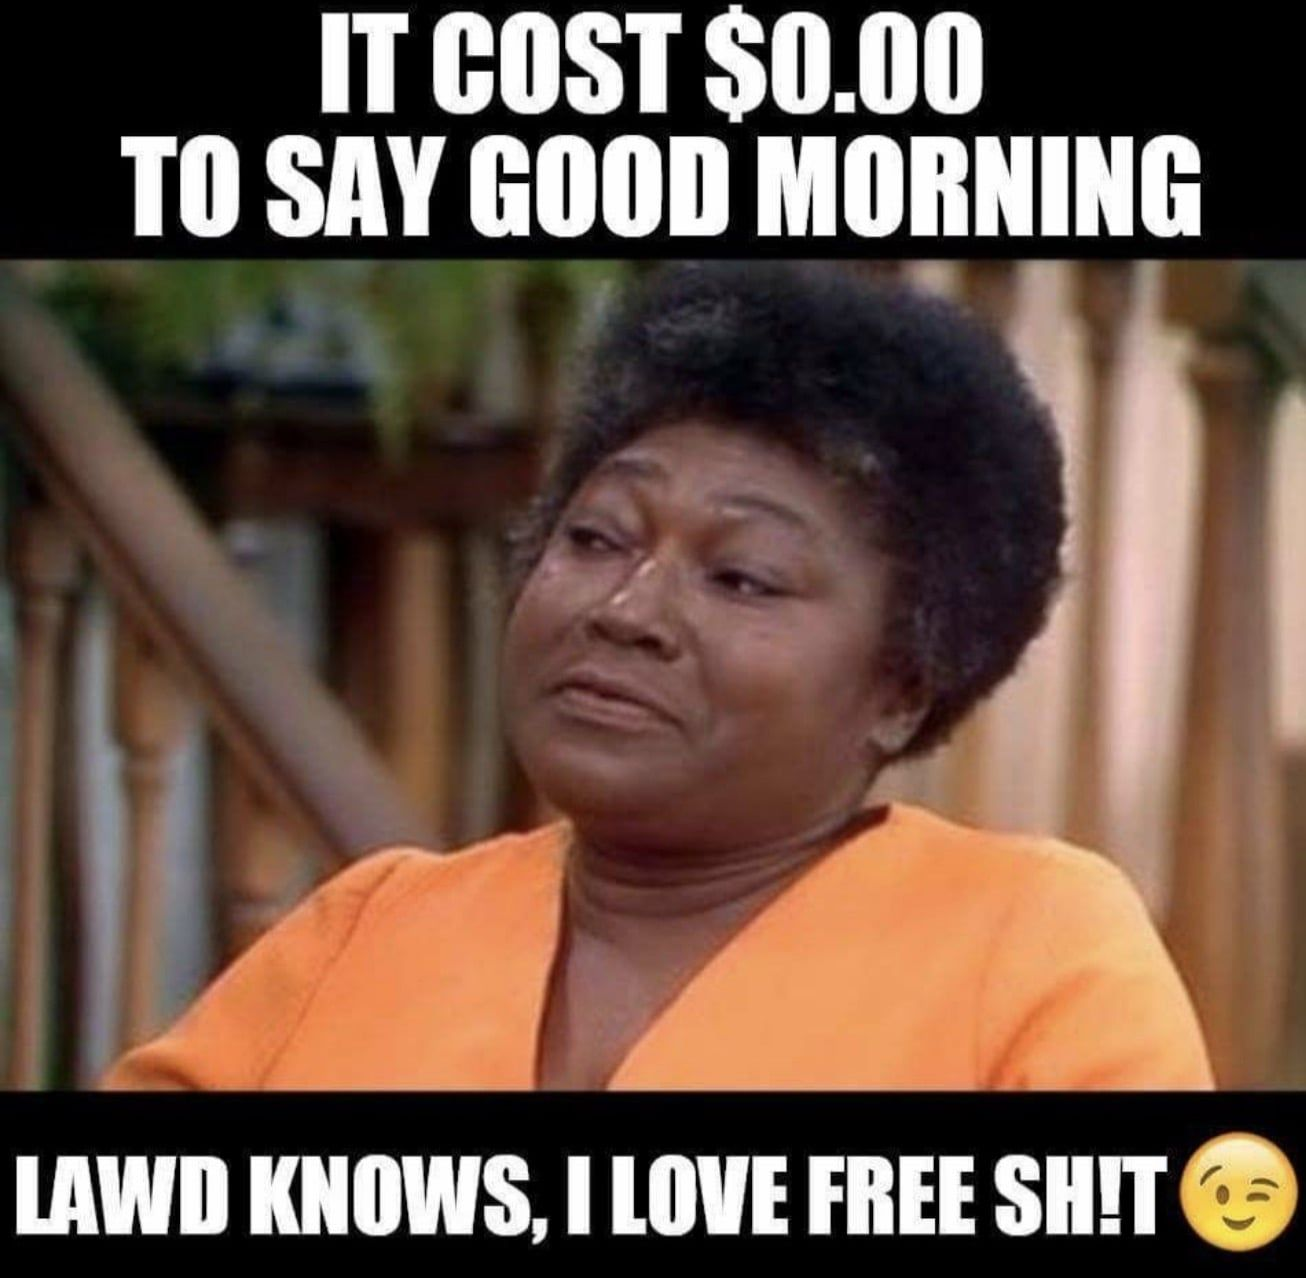 Best Funny Good Morning Memes To Start Your Day With A Smile Morning Quotes Funny Good Morning Meme Funny Good Morning Memes